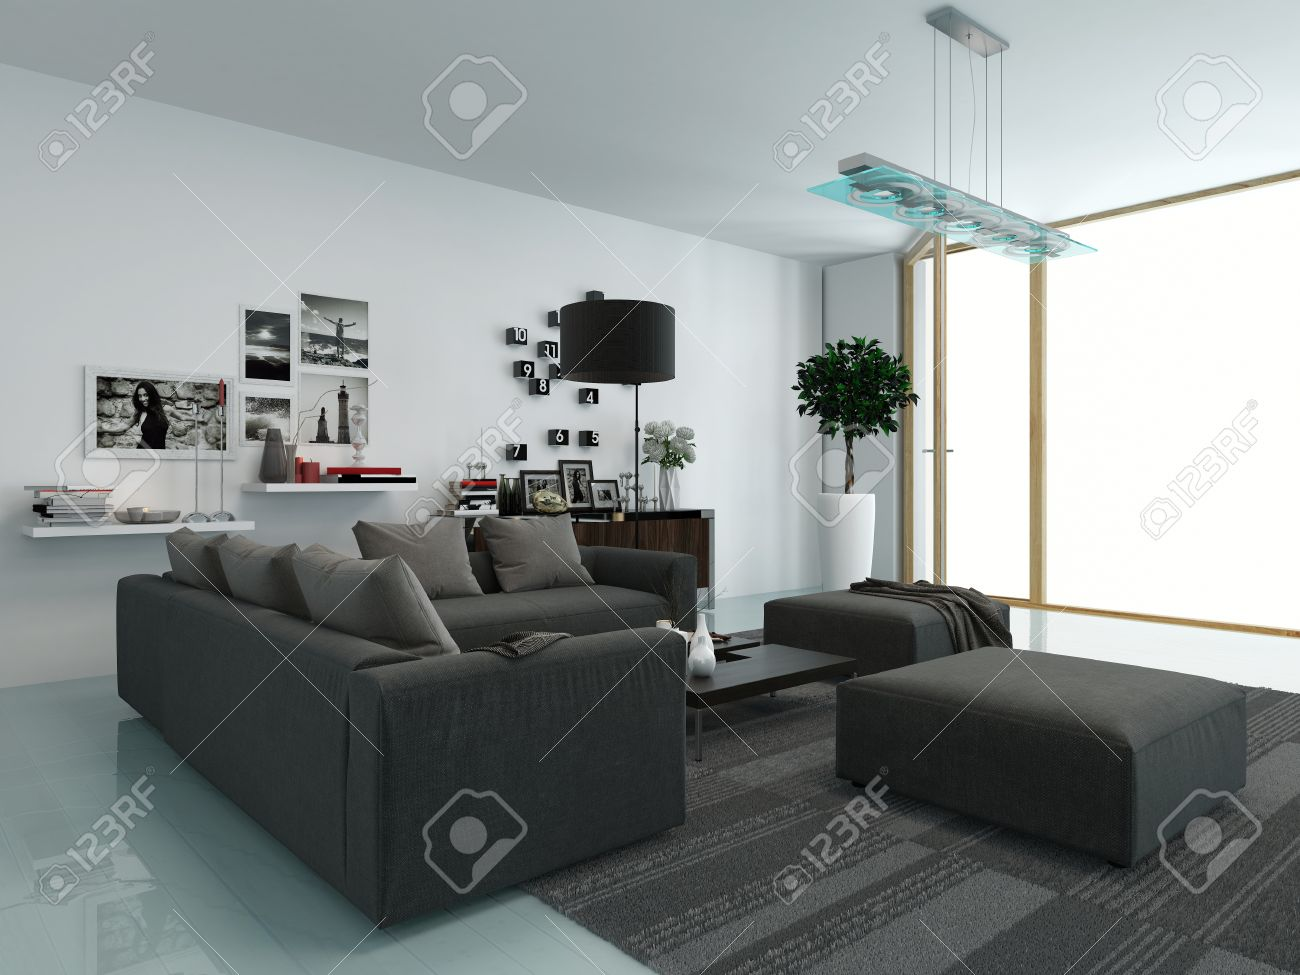 Modern Living Room With An Upholstered Lounge Suite Facing A View Window And Wall Mounted